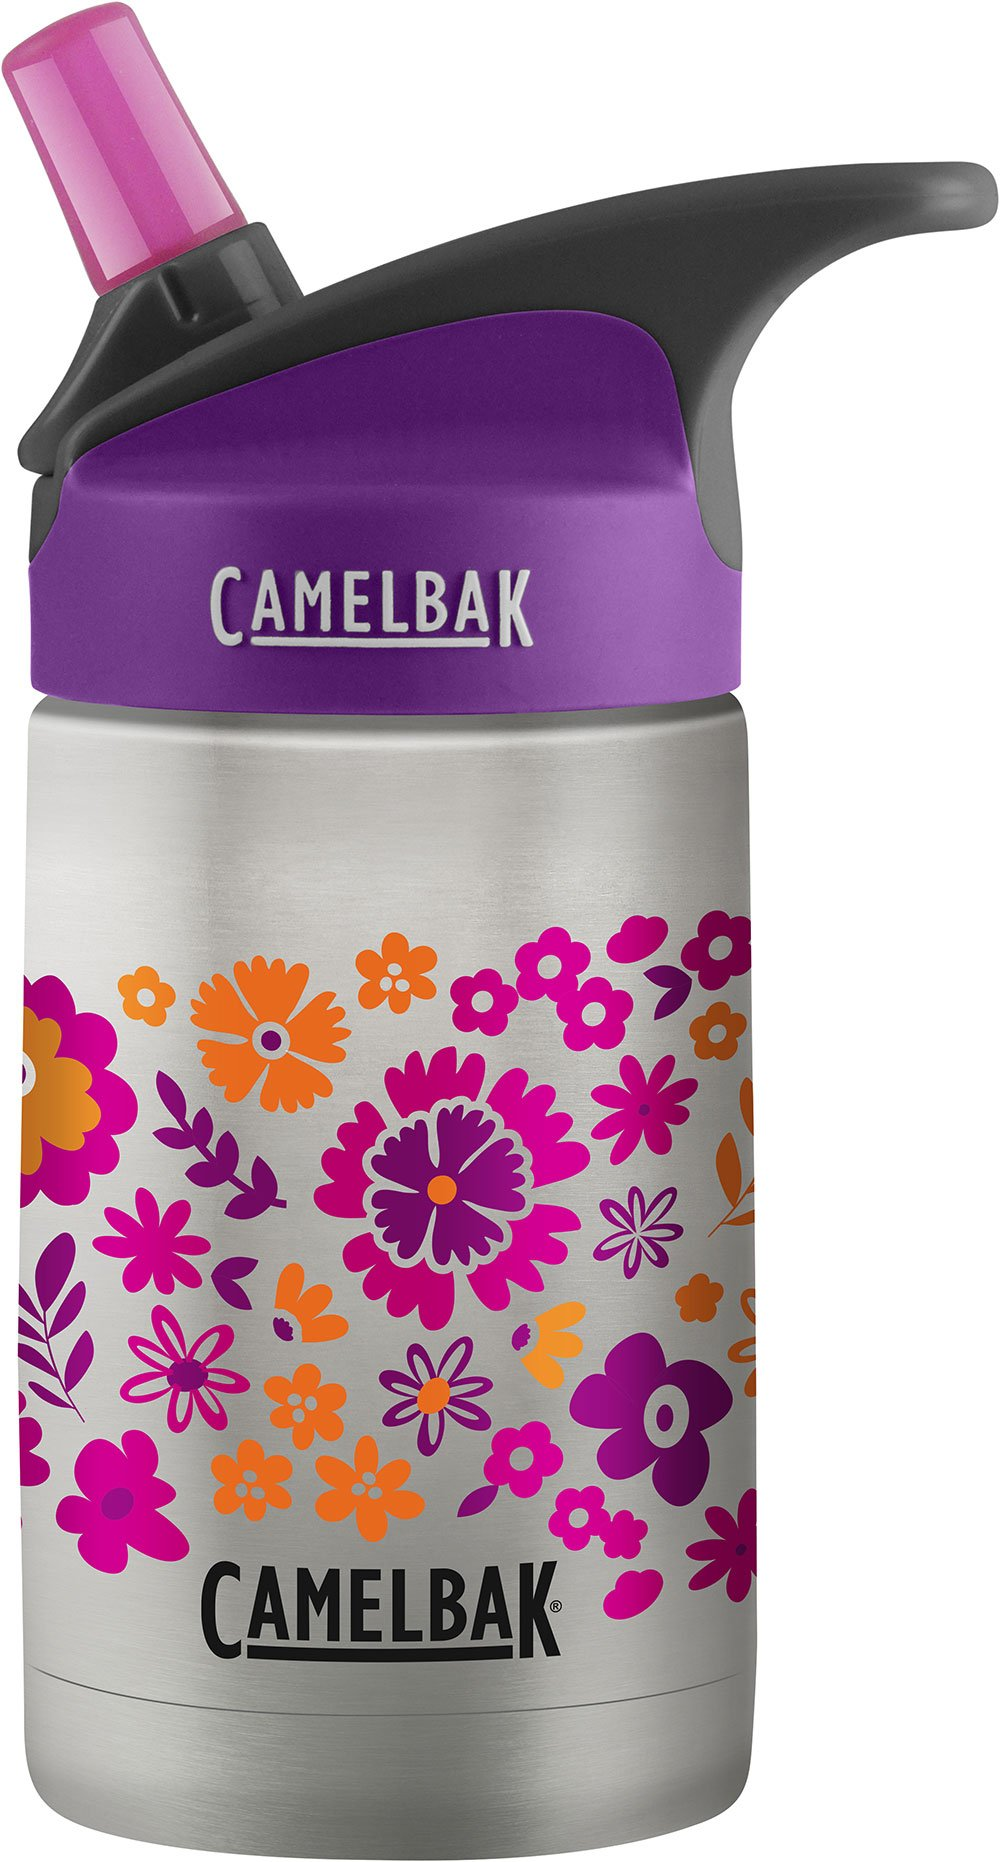 CamelBak Eddy Kids Vacuum Stainless Waterbottle, Retro Floral, 12 oz